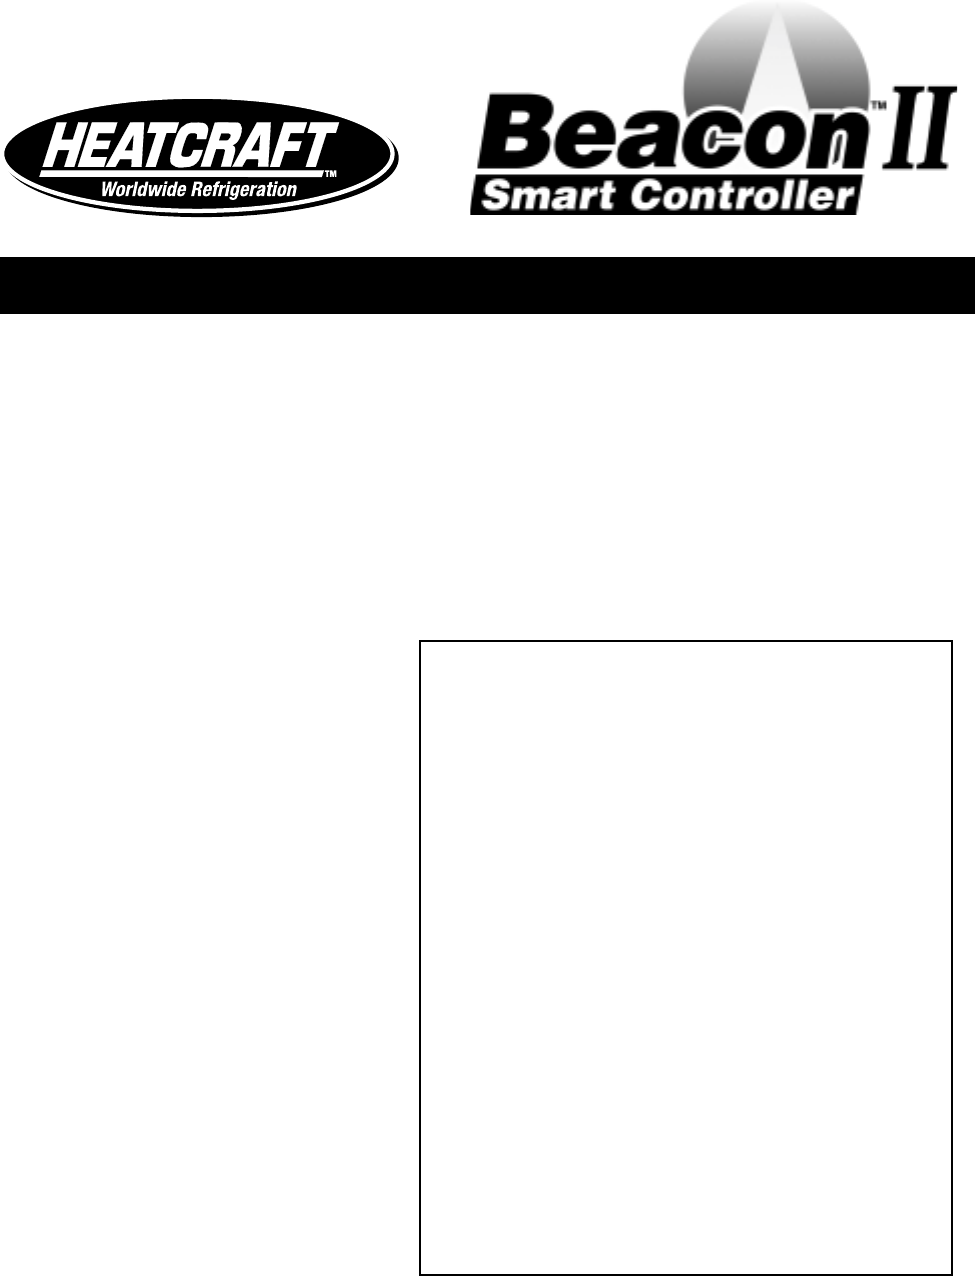 heatcraft wiring diagrams refrigeration  heatcraft  get free image about wiring diagram Typical Roof Refrigeration Condensing Unit Heatcraft Model Numbers